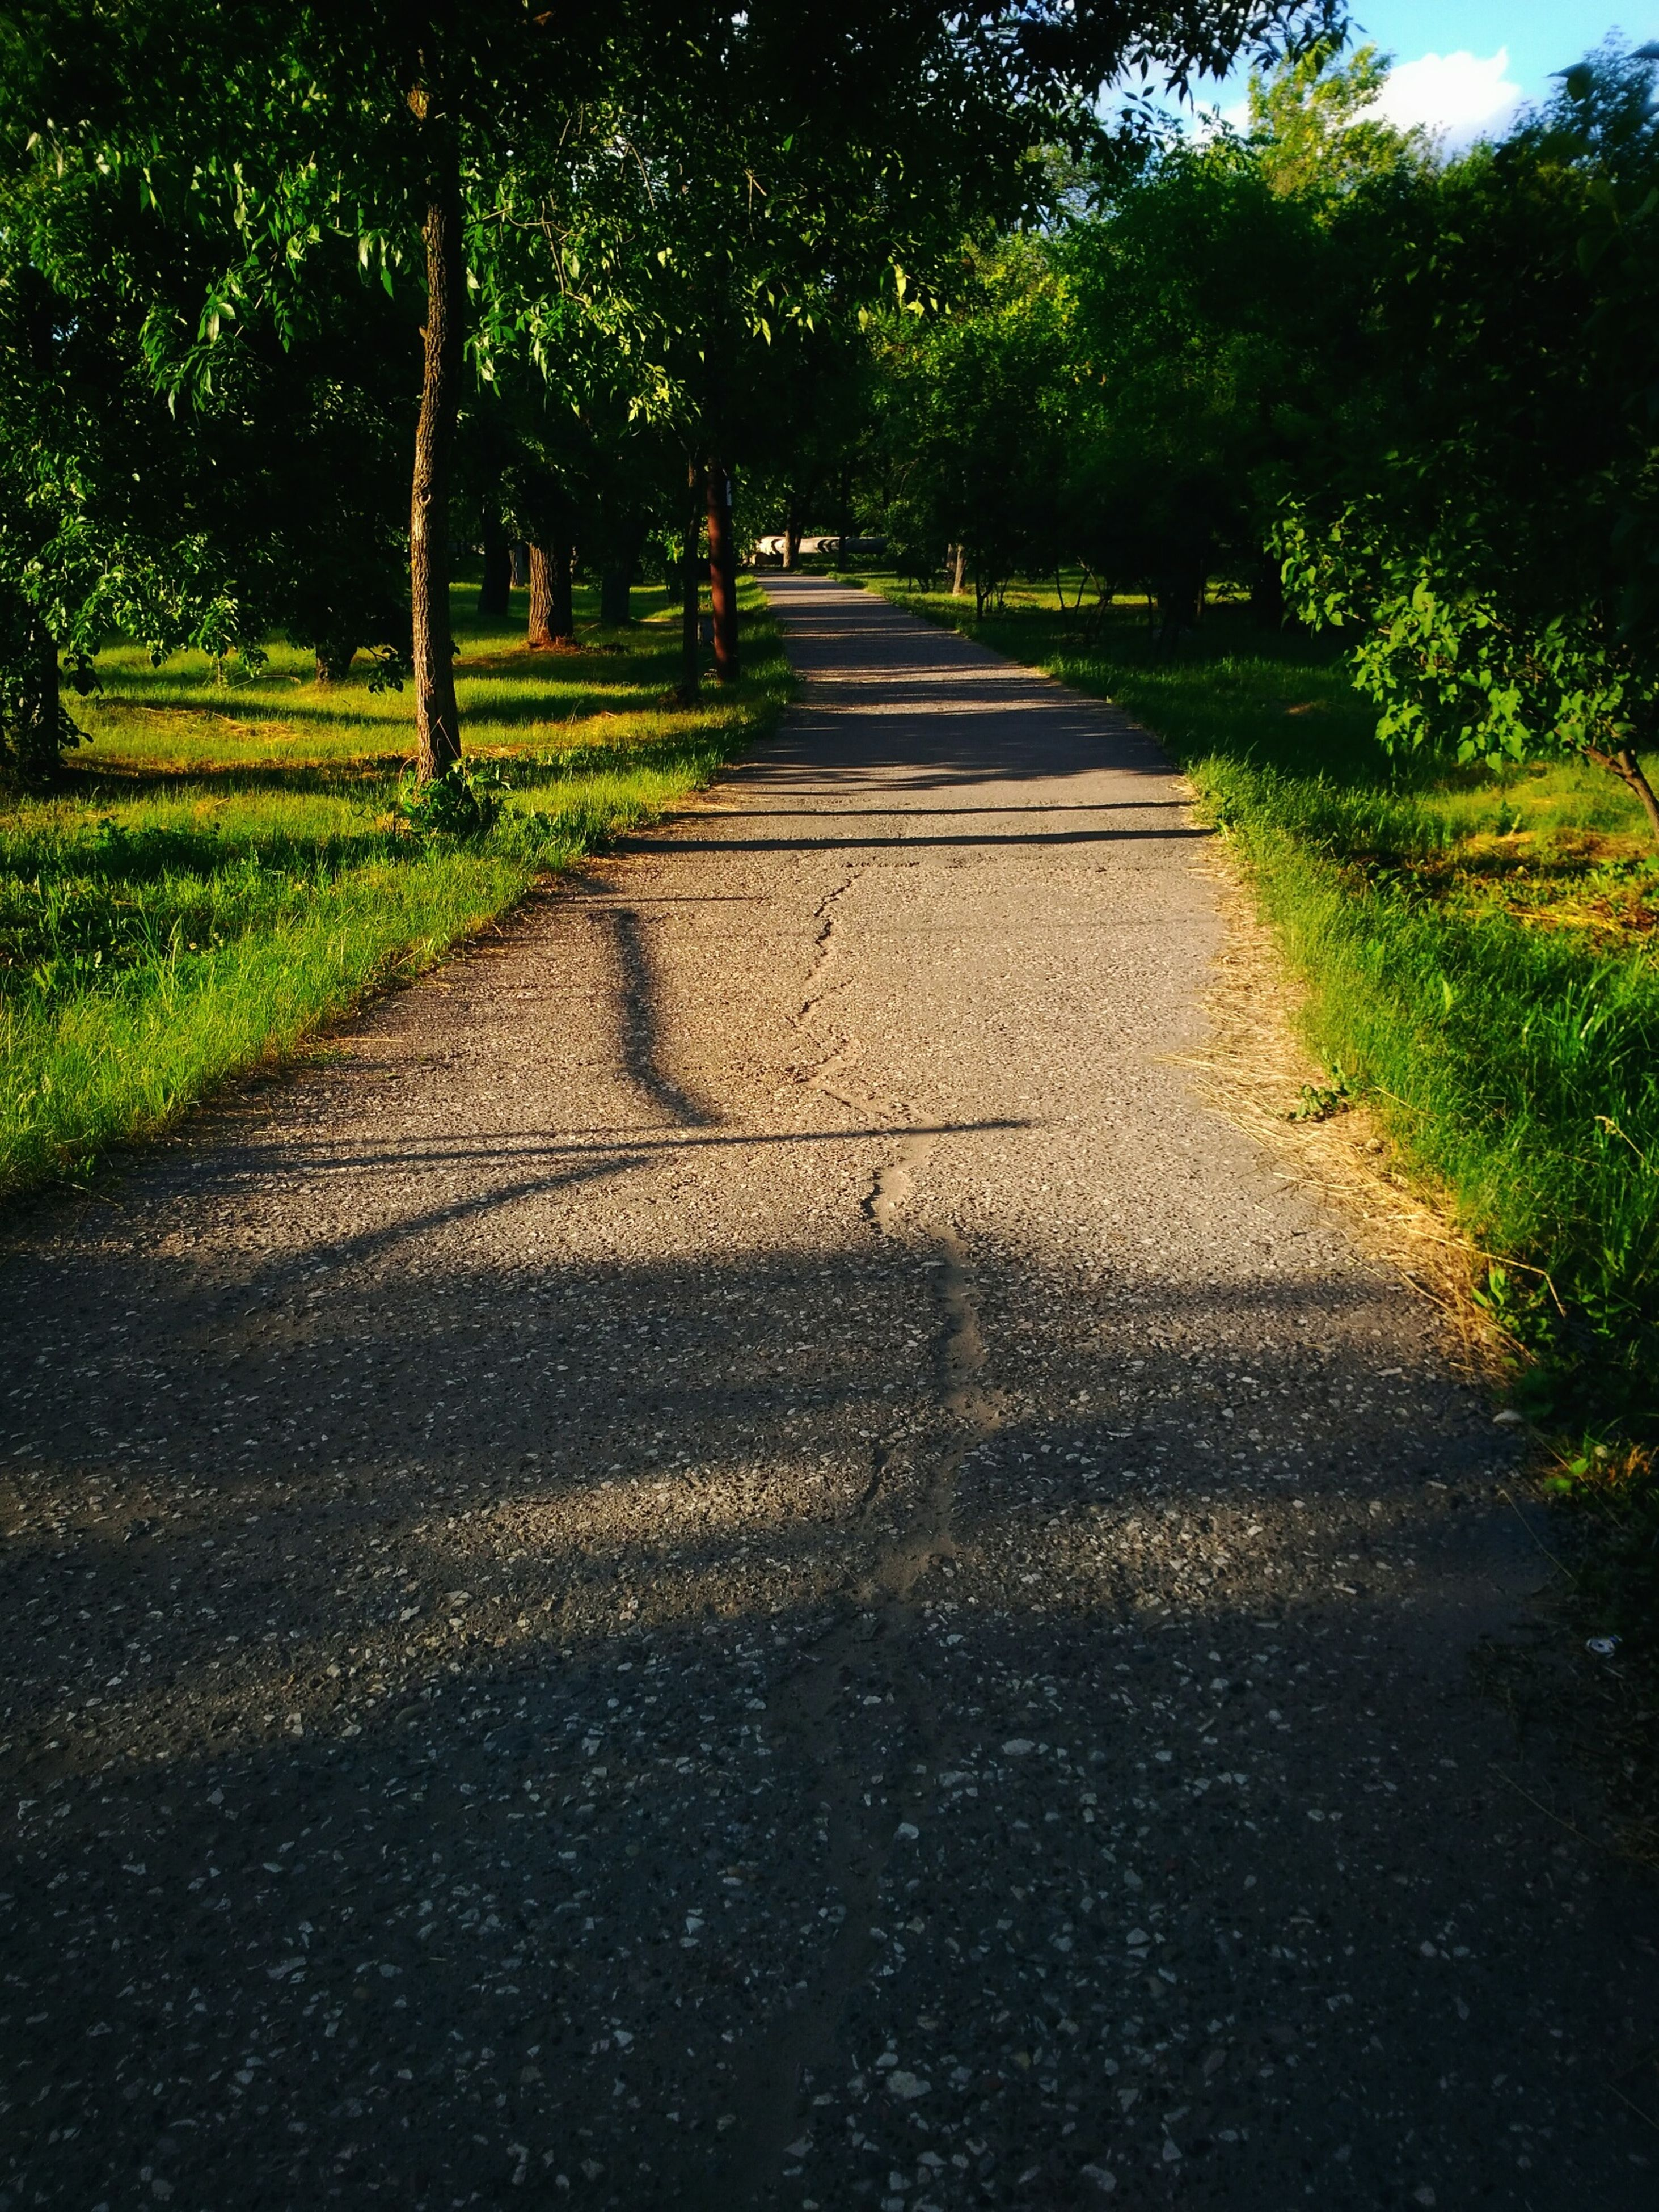 tree, shadow, the way forward, nature, road, sunlight, growth, outdoors, tranquility, no people, day, tranquil scene, beauty in nature, grass